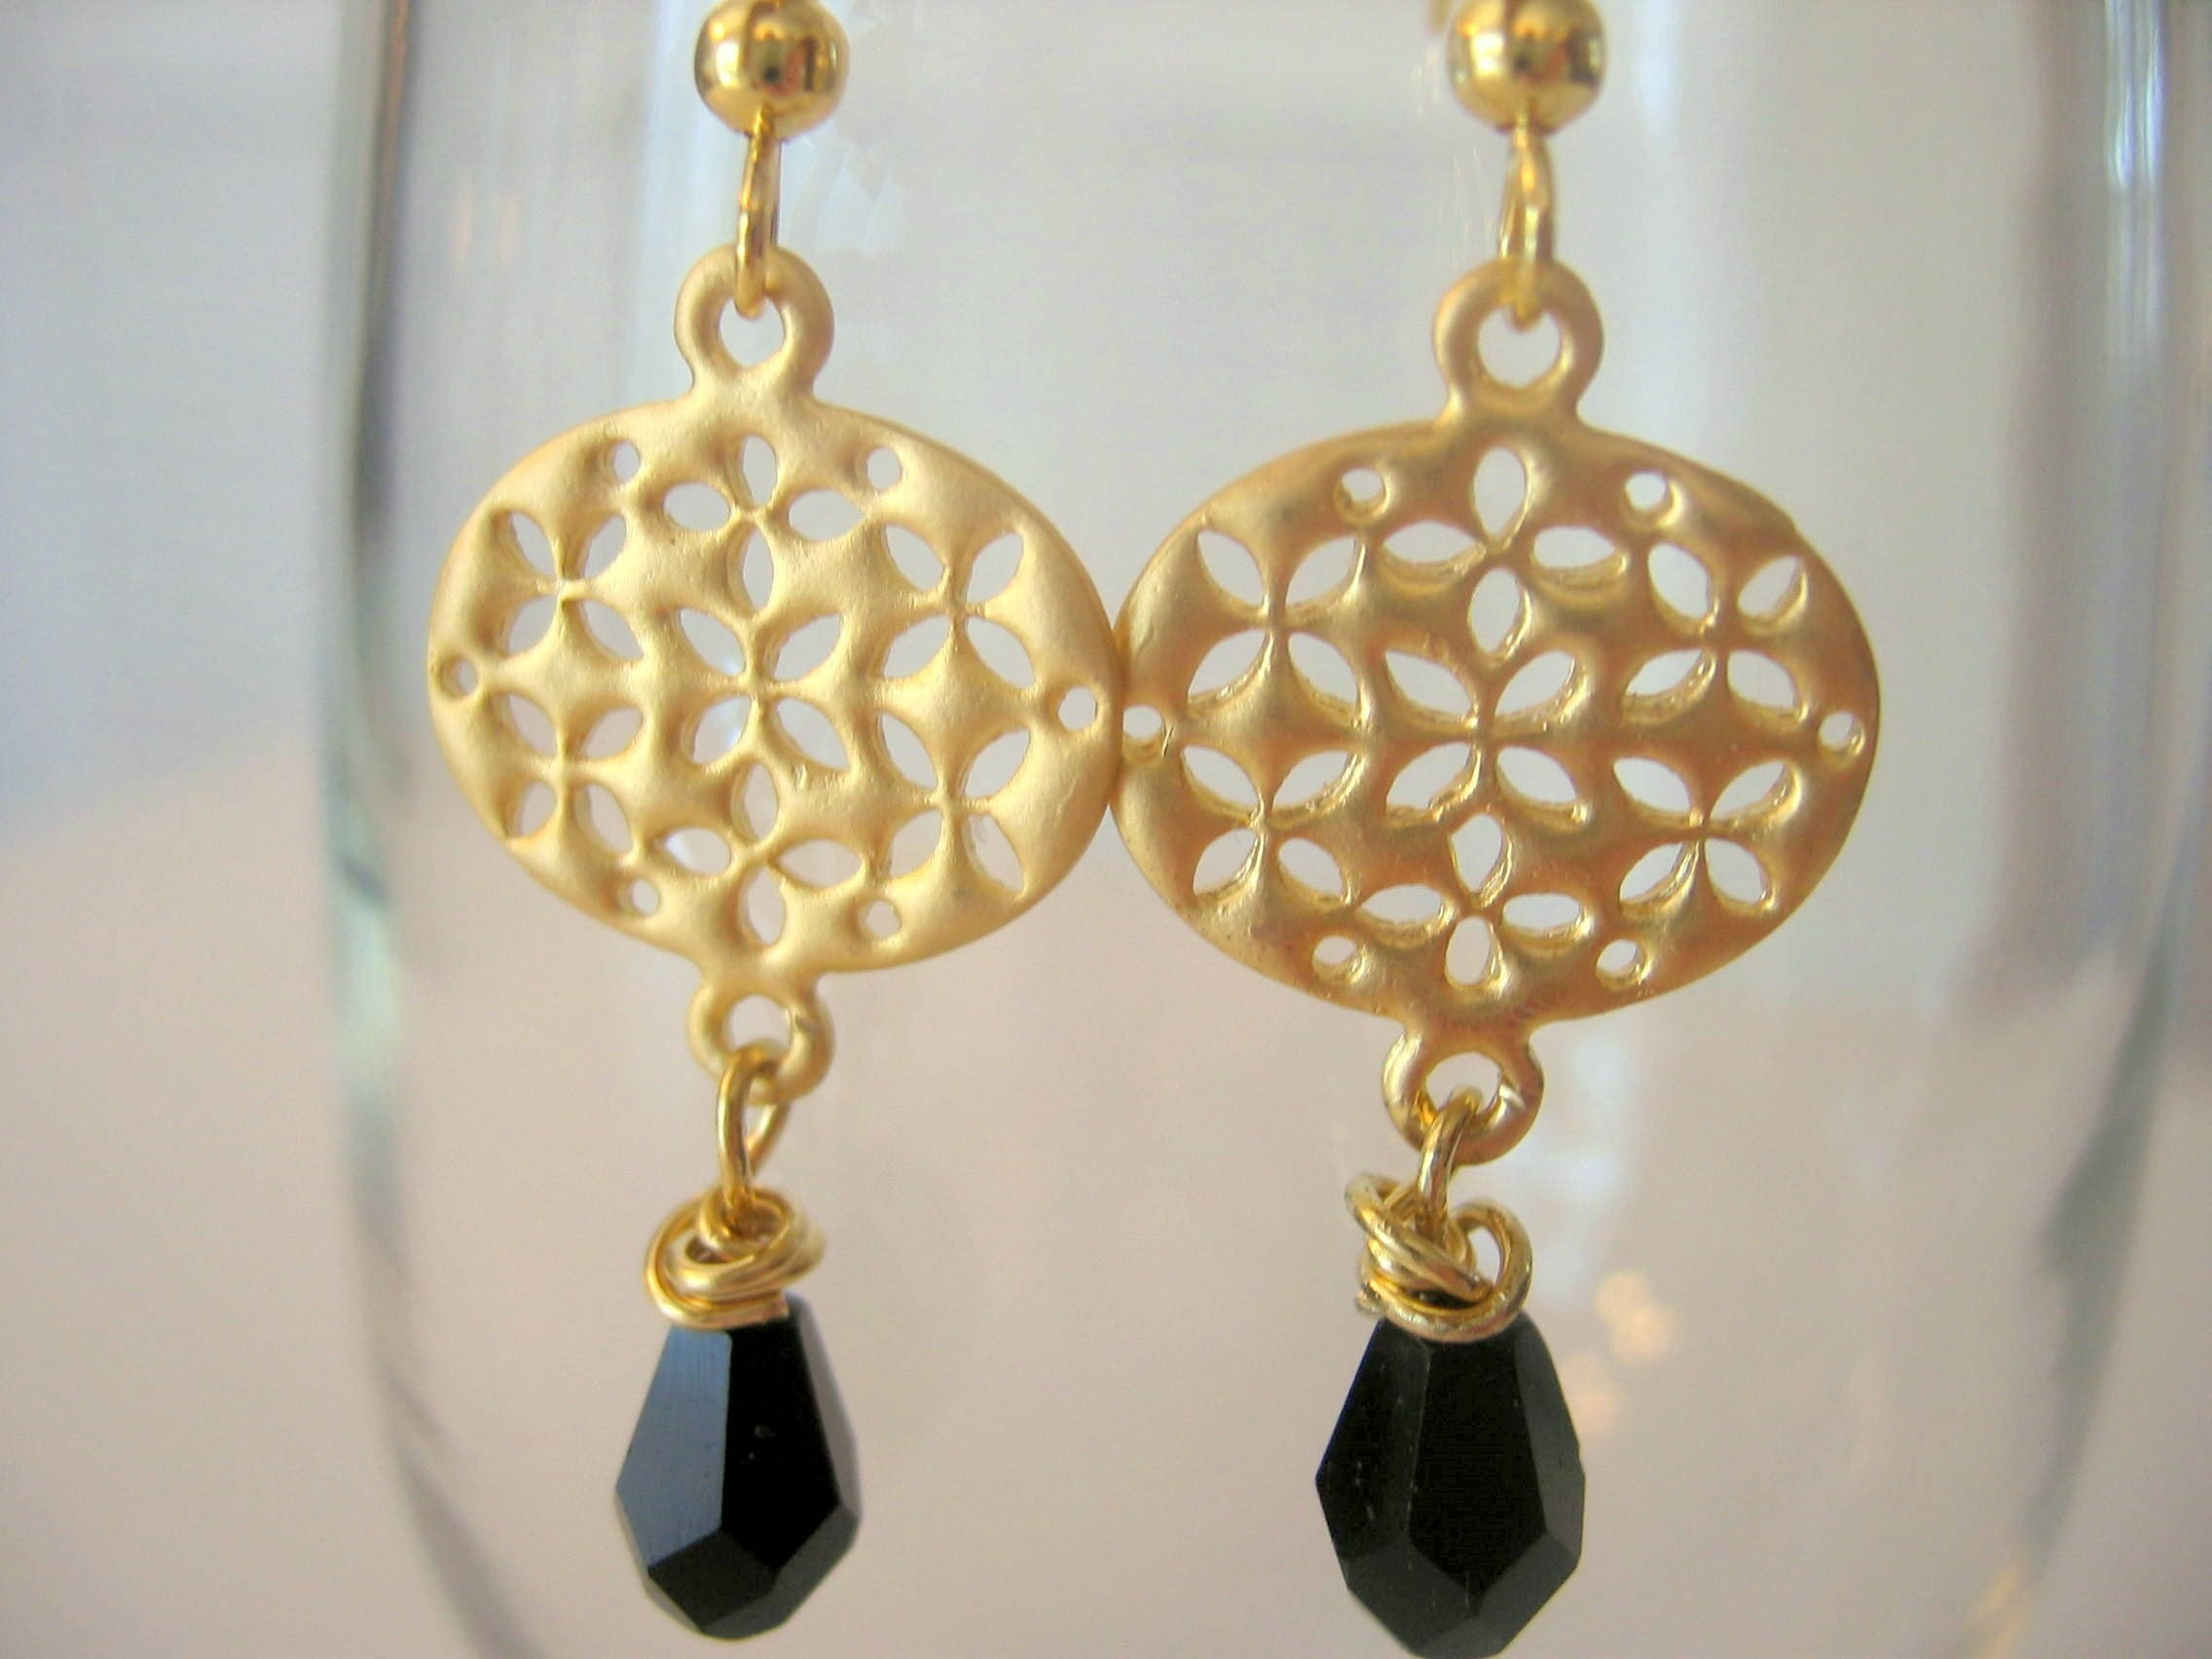 Gold Plated Filigree with Black Bead